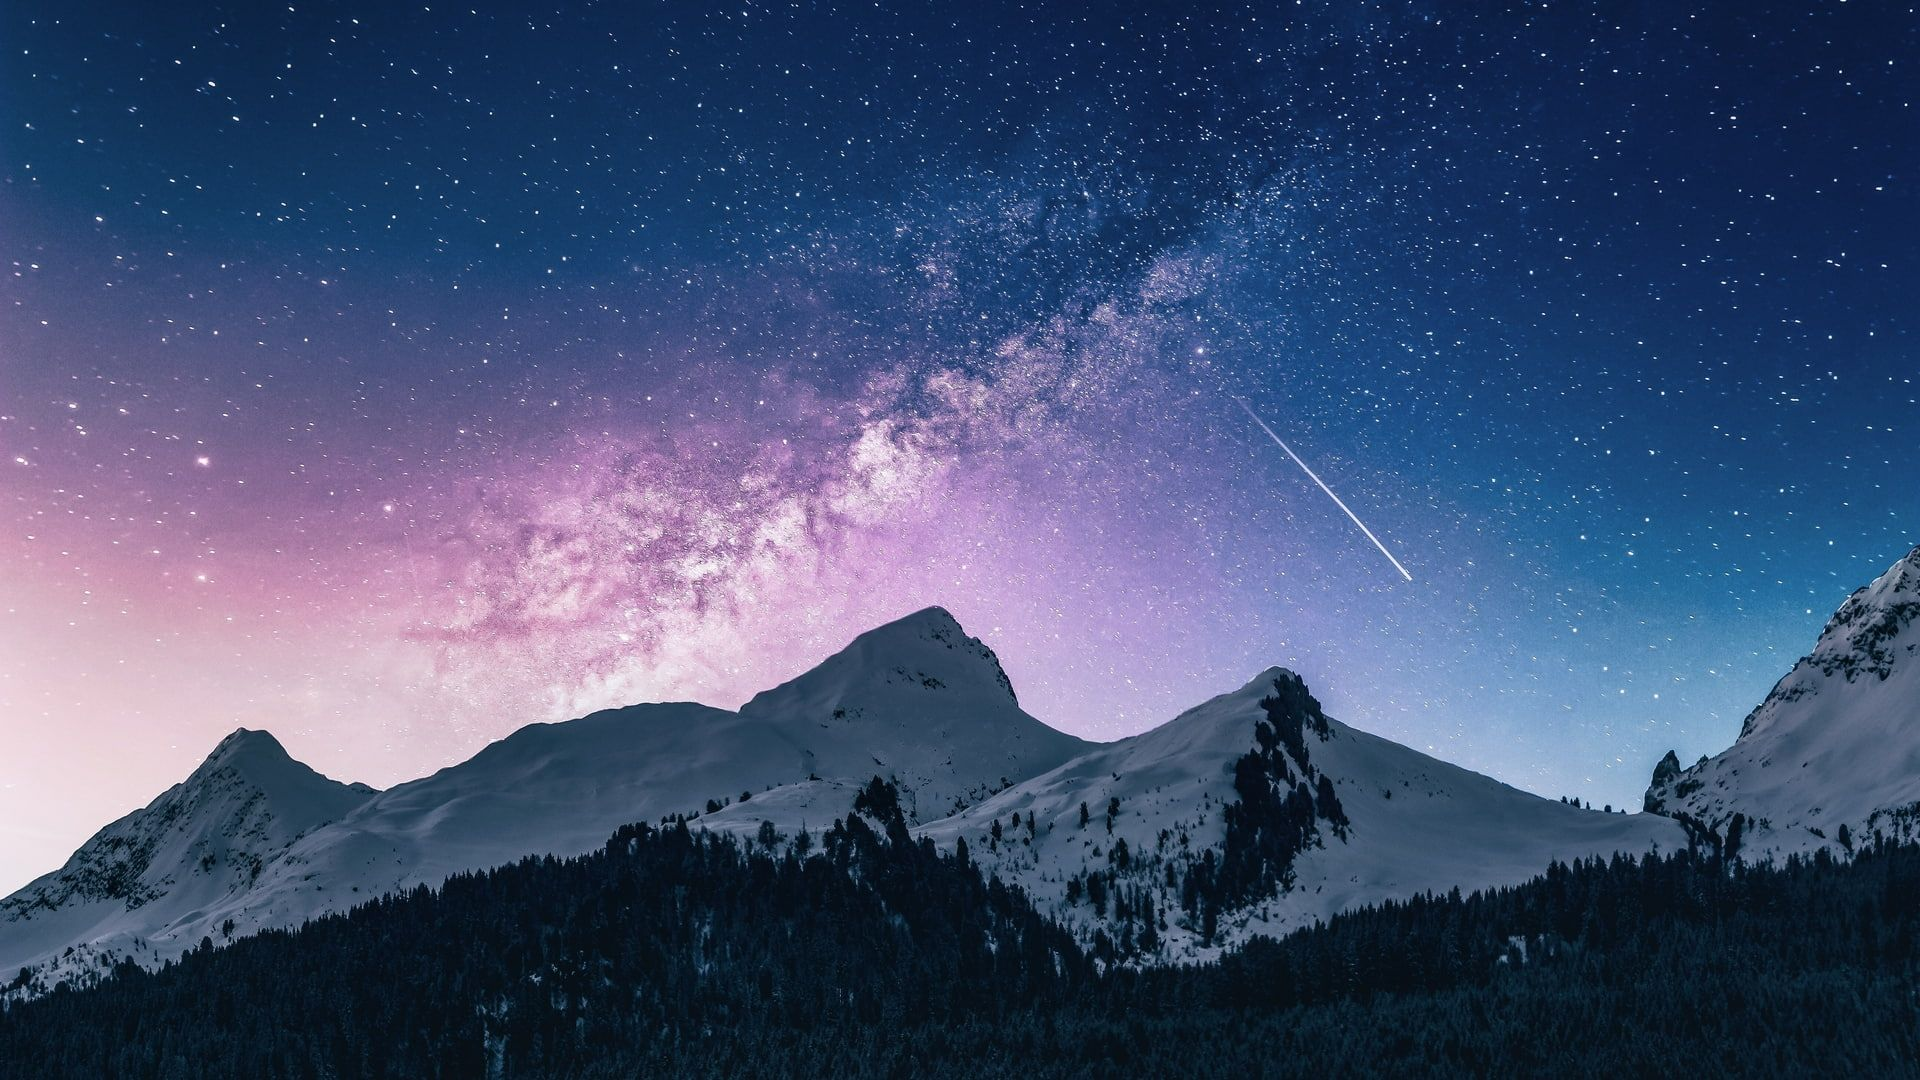 Nature Milky Way Stars Landscape Sky Mountains 1080p